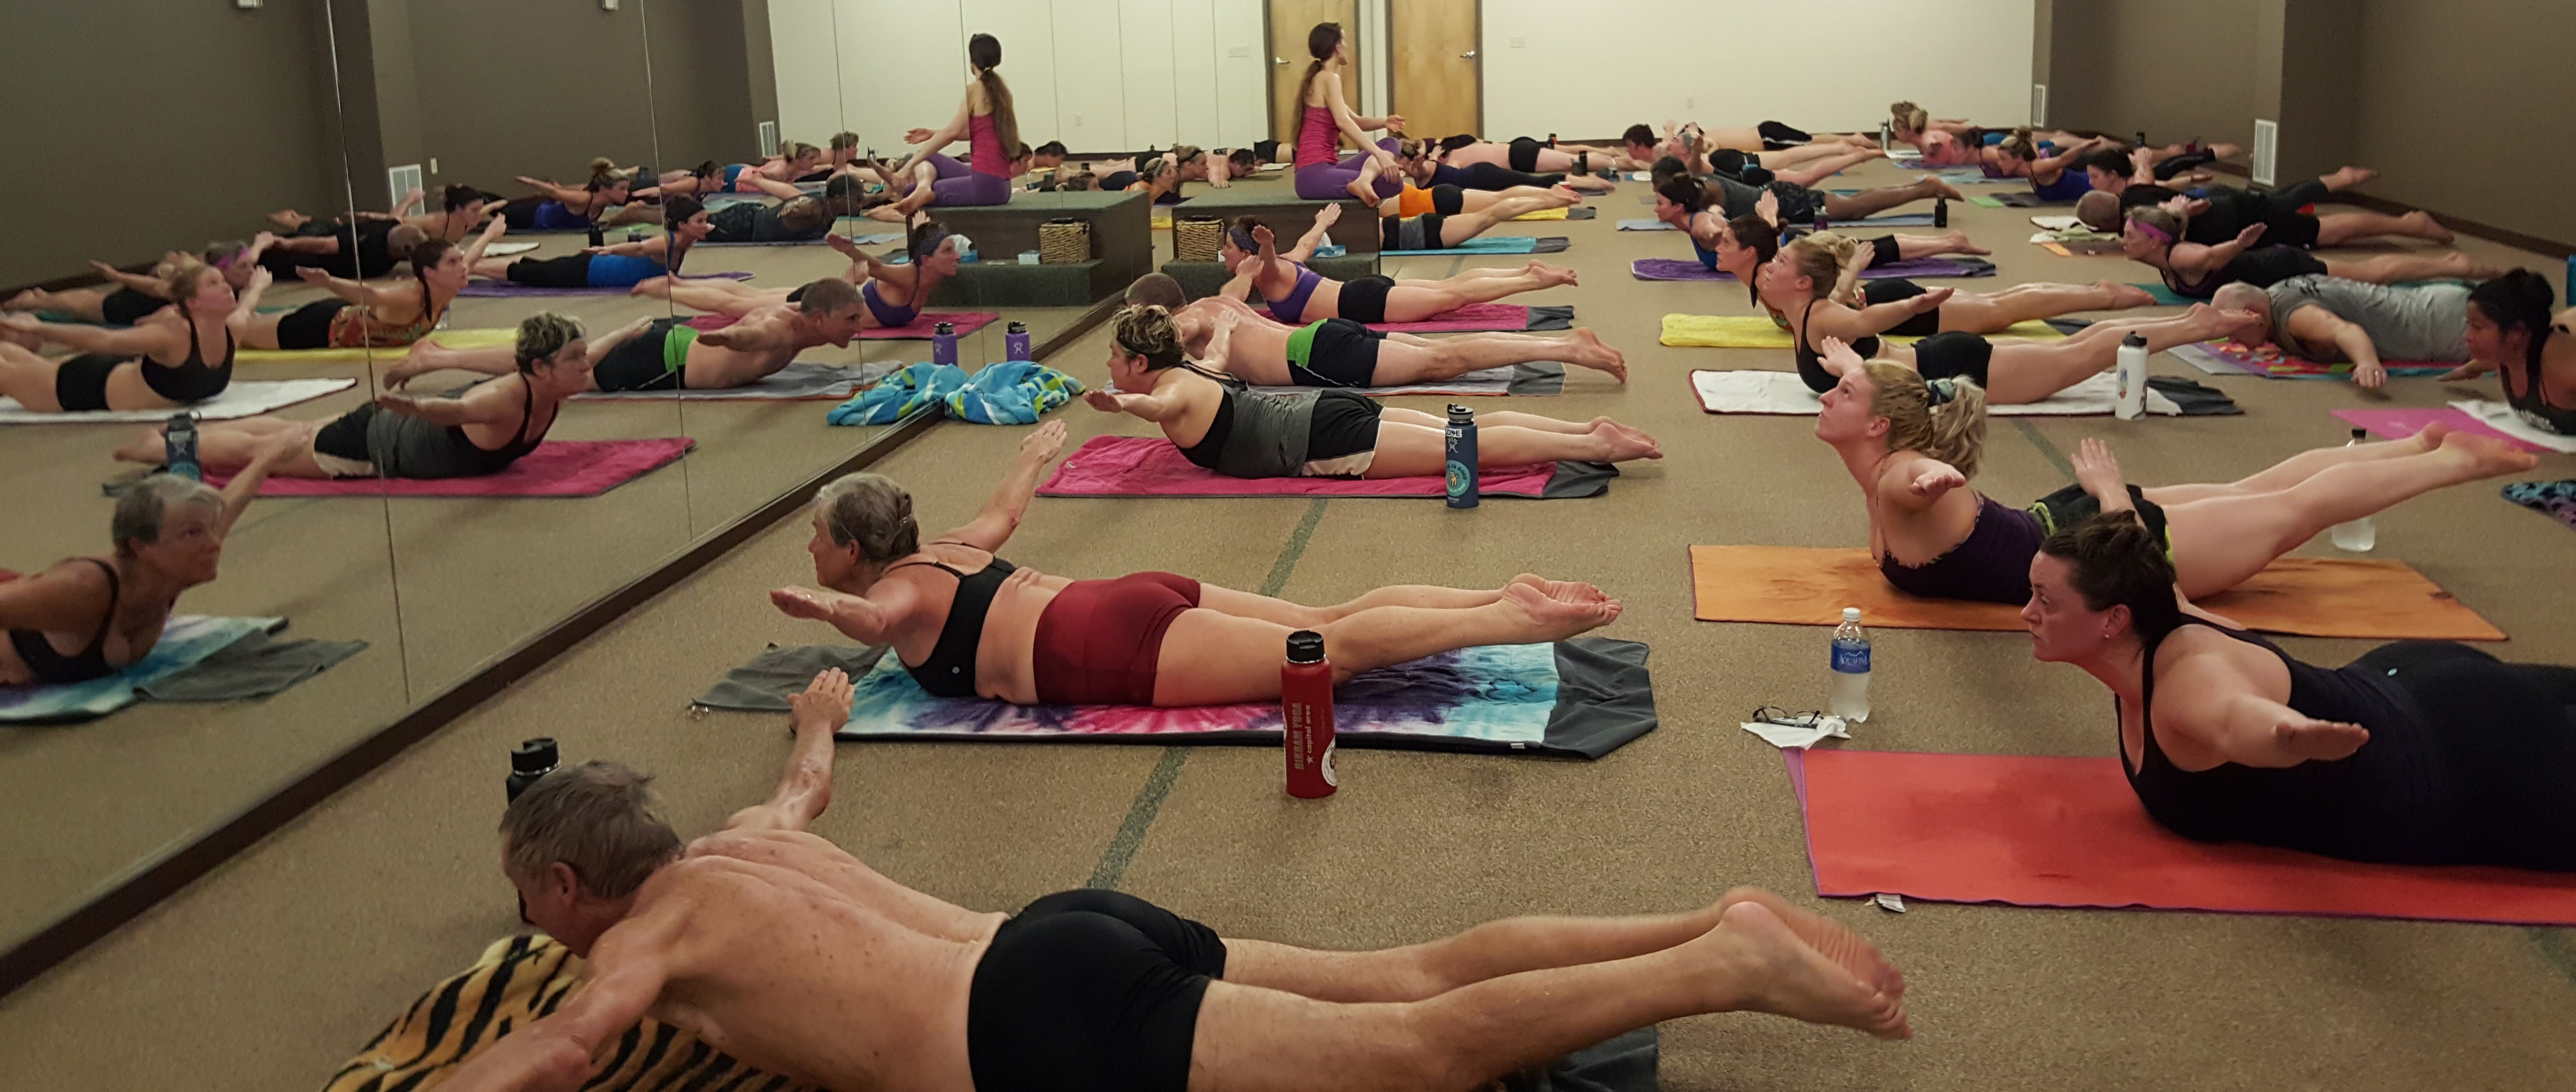 Bikram Yoga Online Boost Your Immunity Detailed Personal Instruction